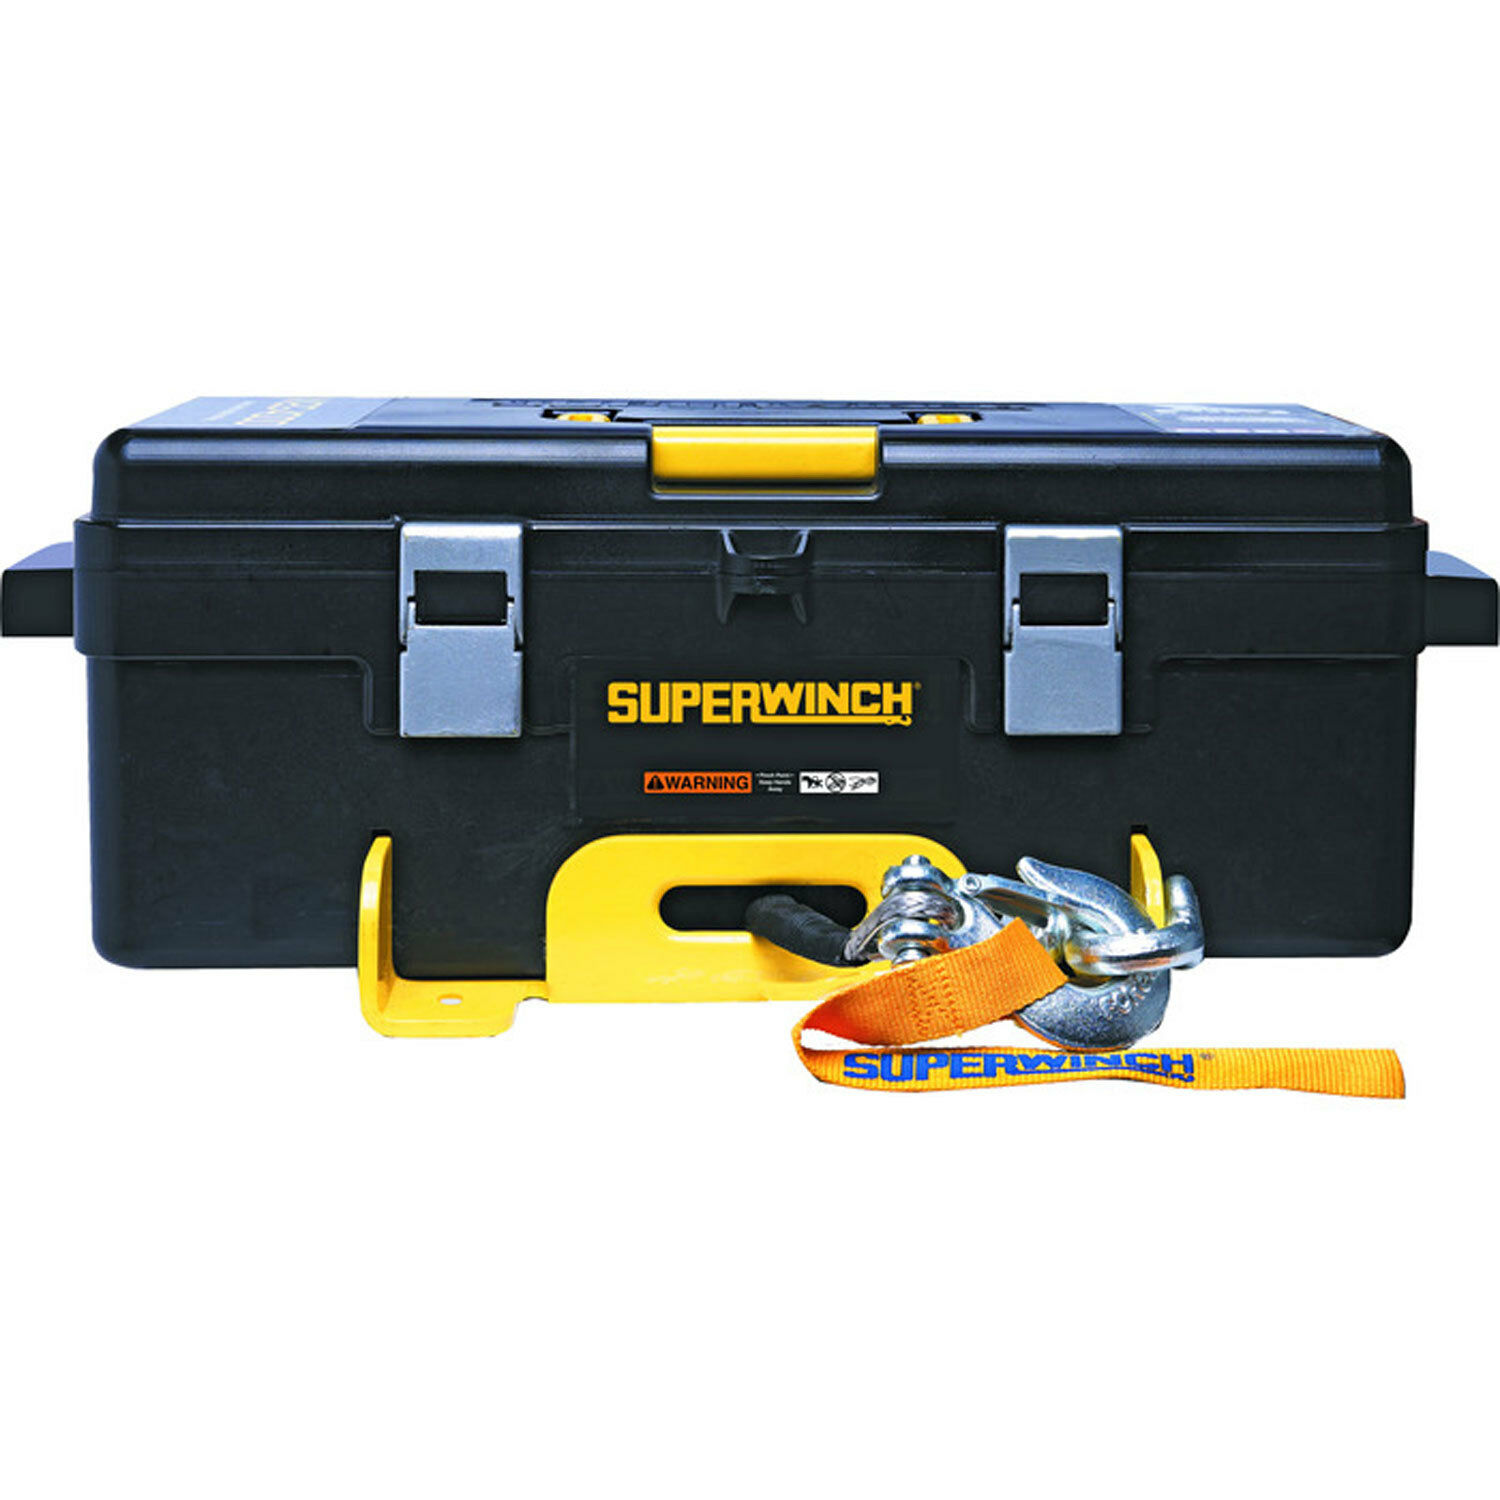 SUPERWINCH 1140222 Winch2Go Portable Winch 4000 lbs weight capacity ...